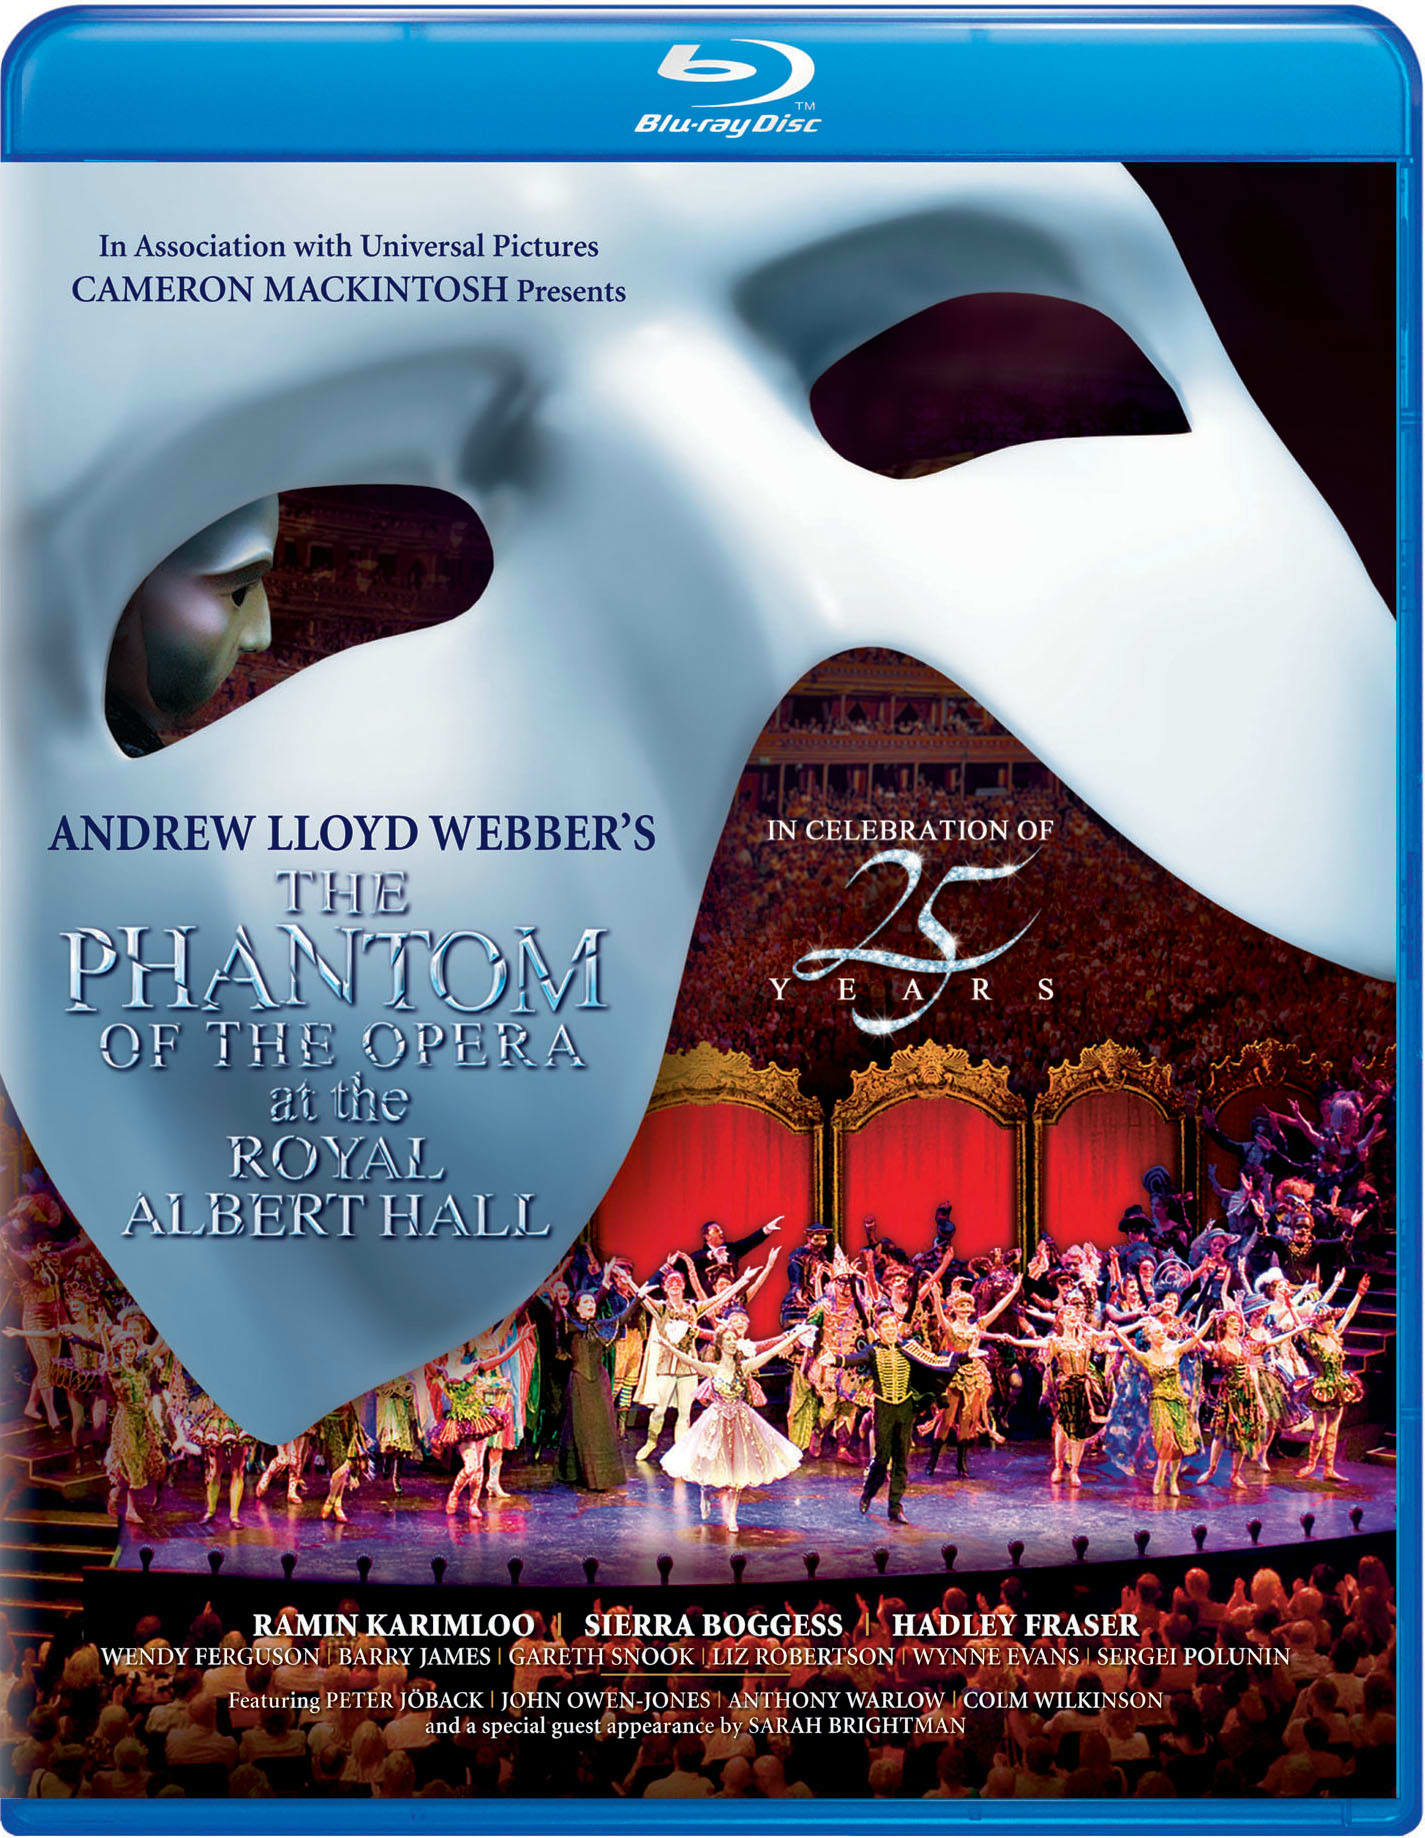 The Phantom of the Opera at the Albert Hall - 25th Anniversary [Blu-ray]